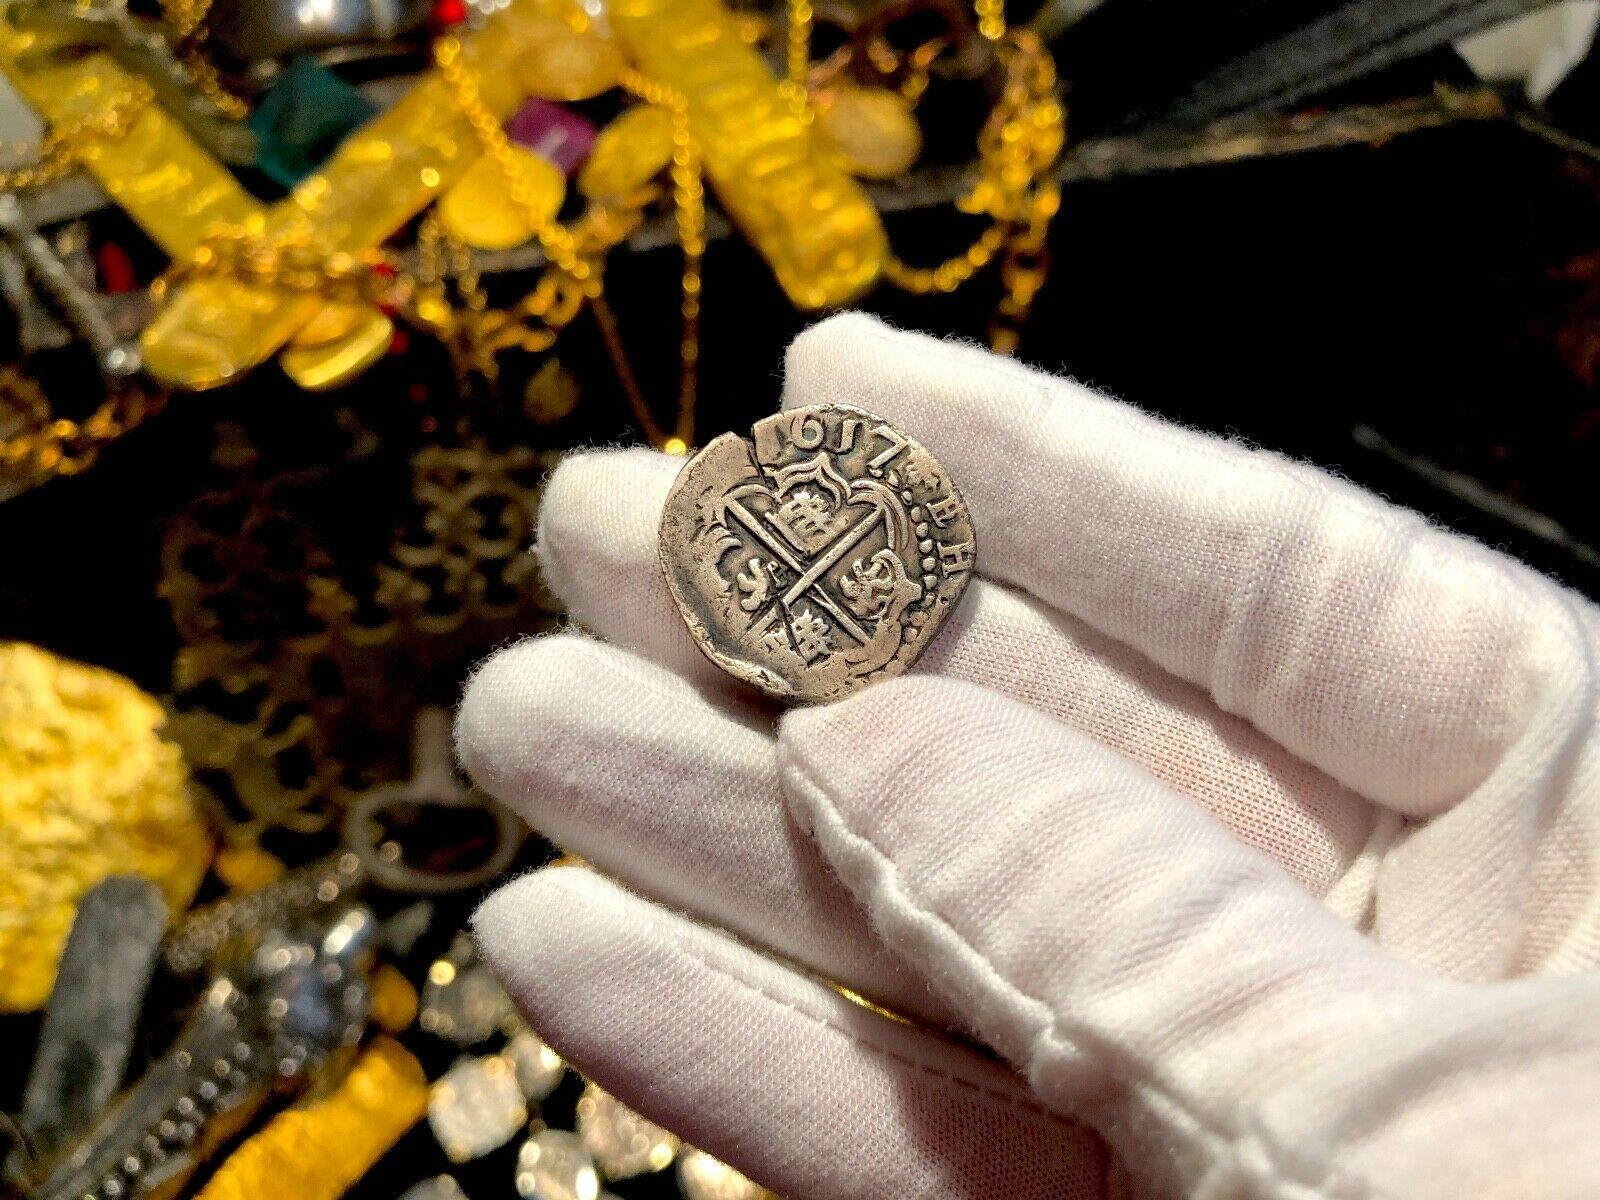 BOLIVIA 2 REALES 1617 DATED PIRATE GOLD COINS TO BE JEWELRY PENDANT NECKLACE image 2